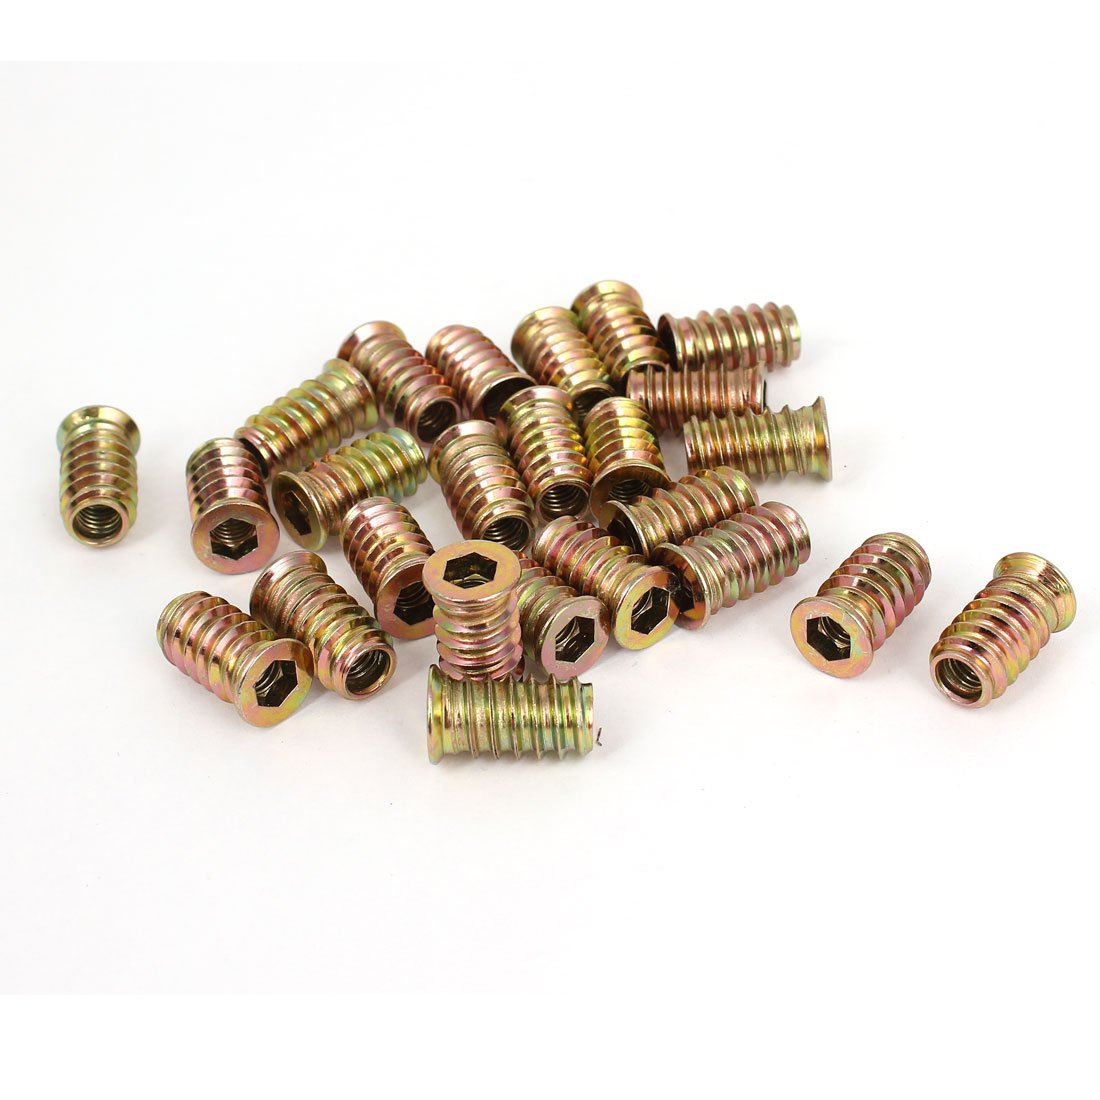 uxcell Wood Furniture M6x20mm Threaded Insert Nuts Interface Hex Socket Drive 20pcs a18072600ux0272